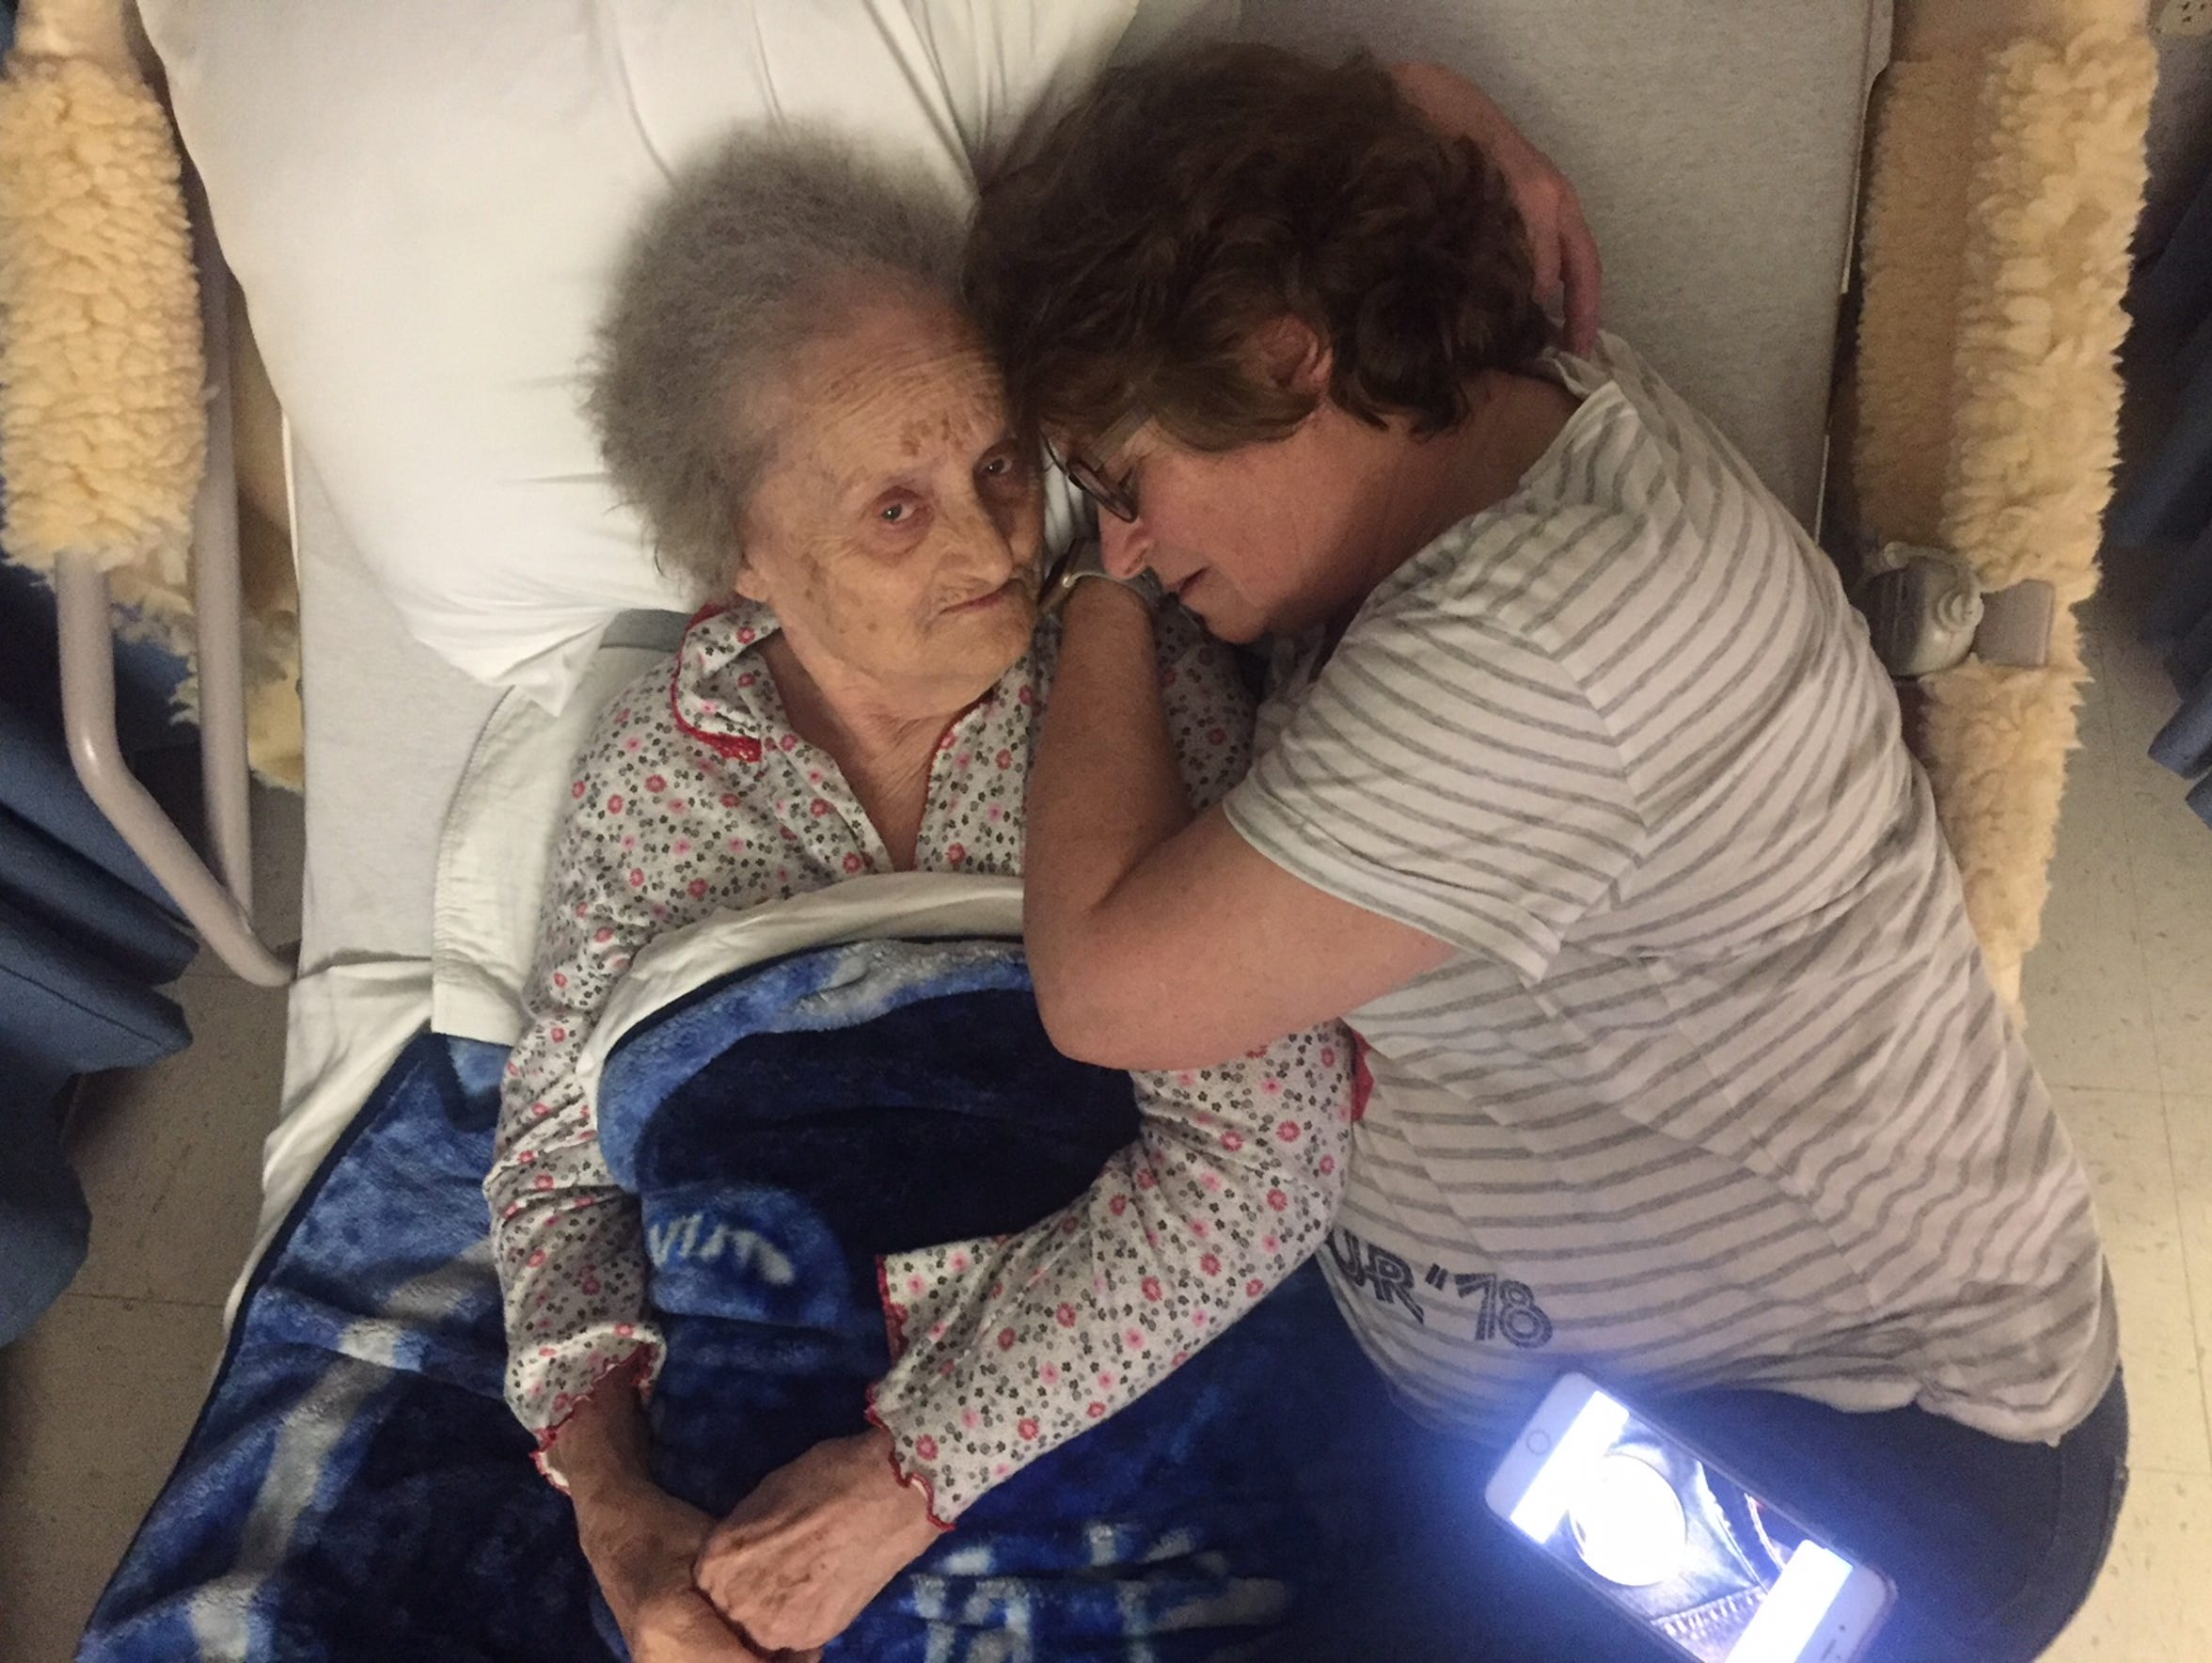 During her first nursing home stay in early 2017, Helen